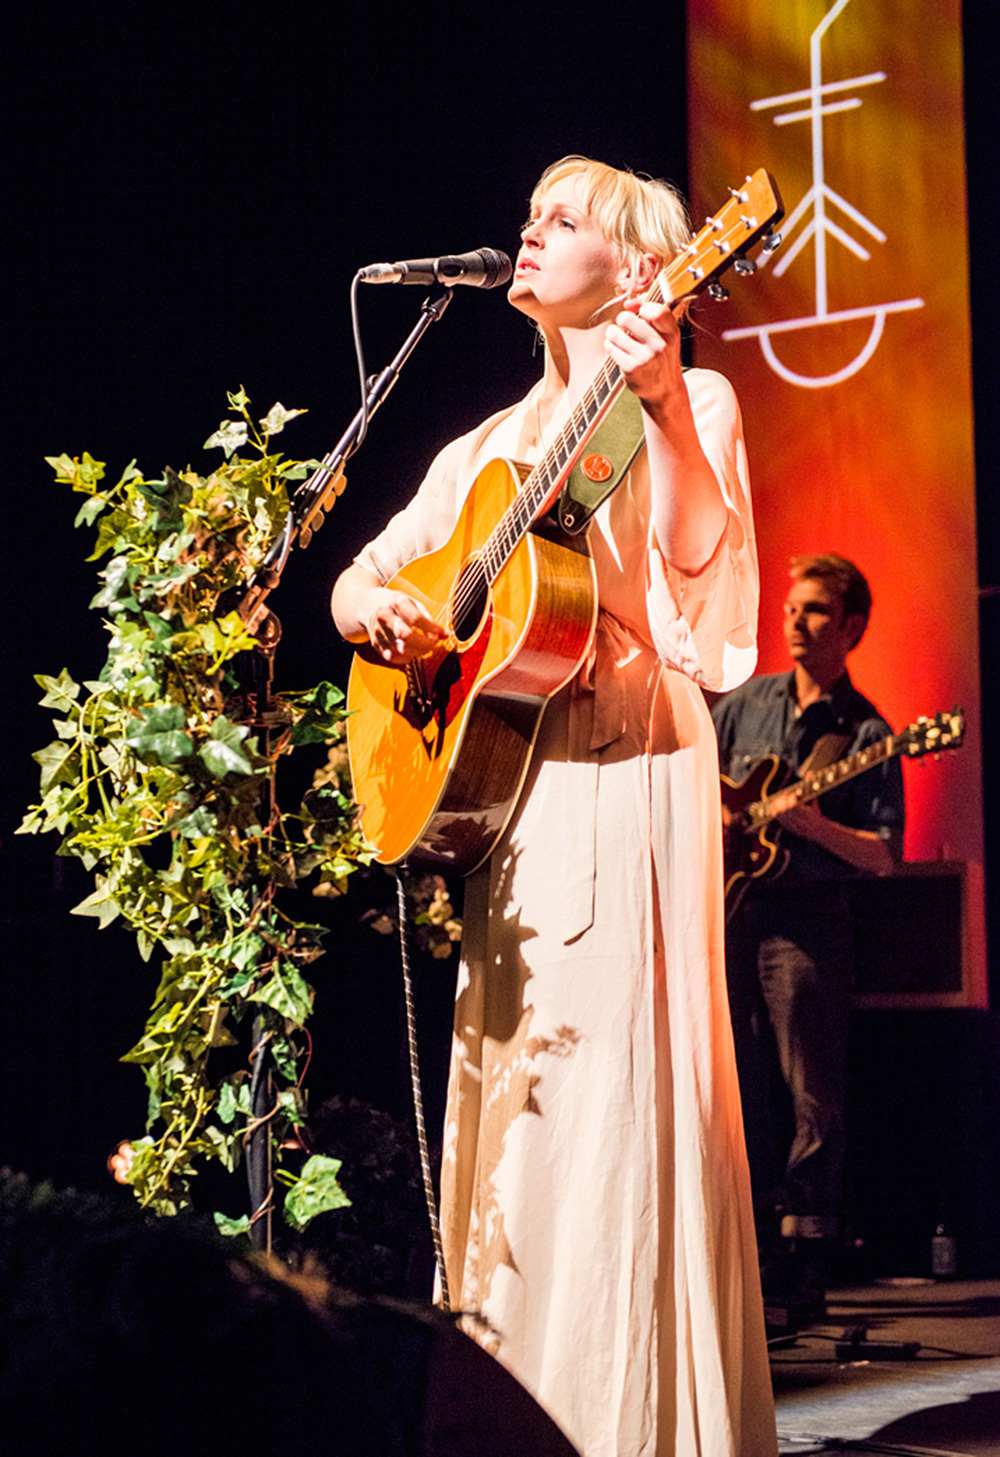 Laura Marling @ Roundhouse